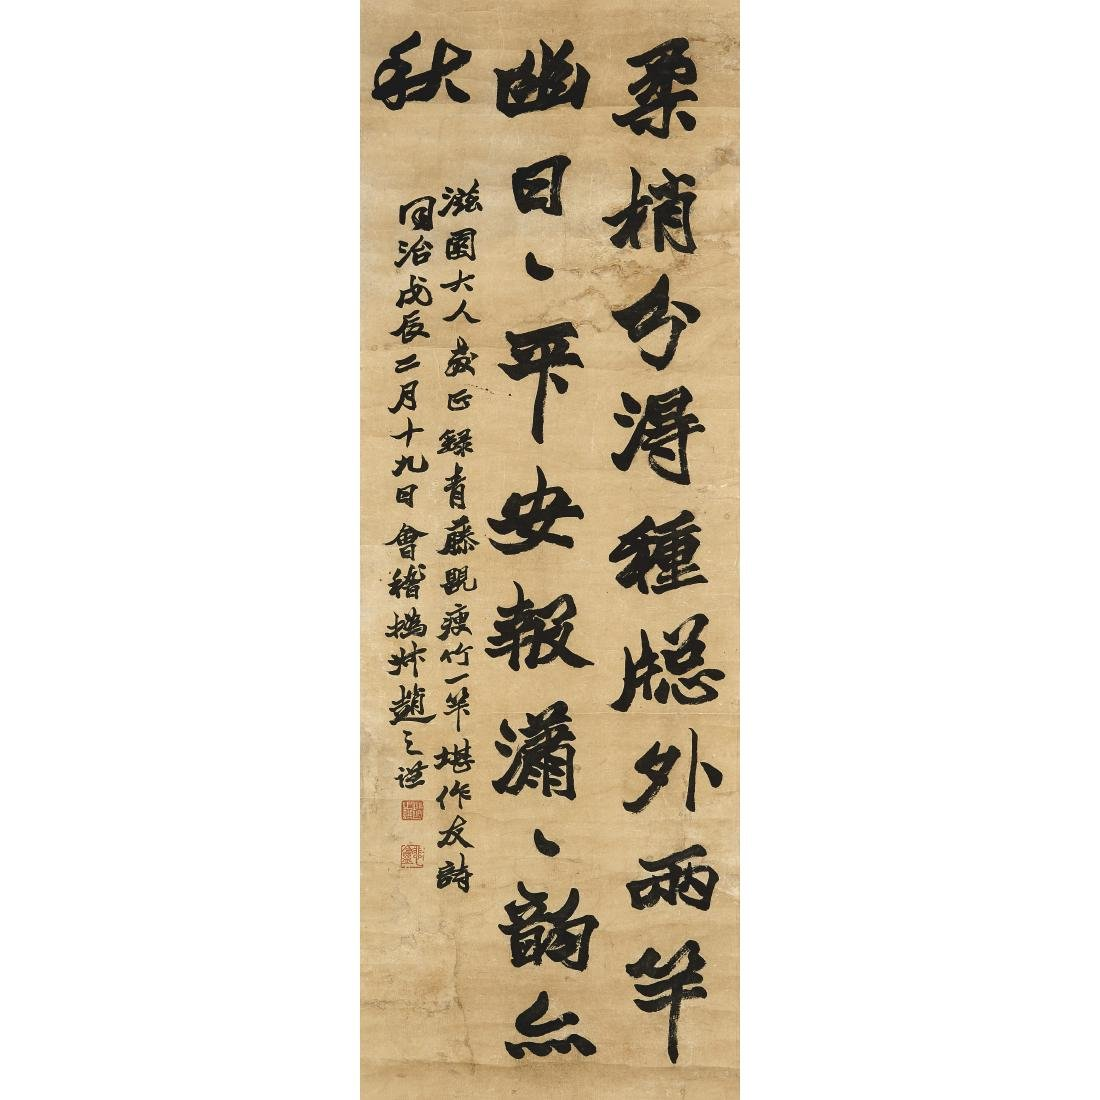 A CHINESE CALLIGRAPHY SCROLL by Zhao Zhiqian